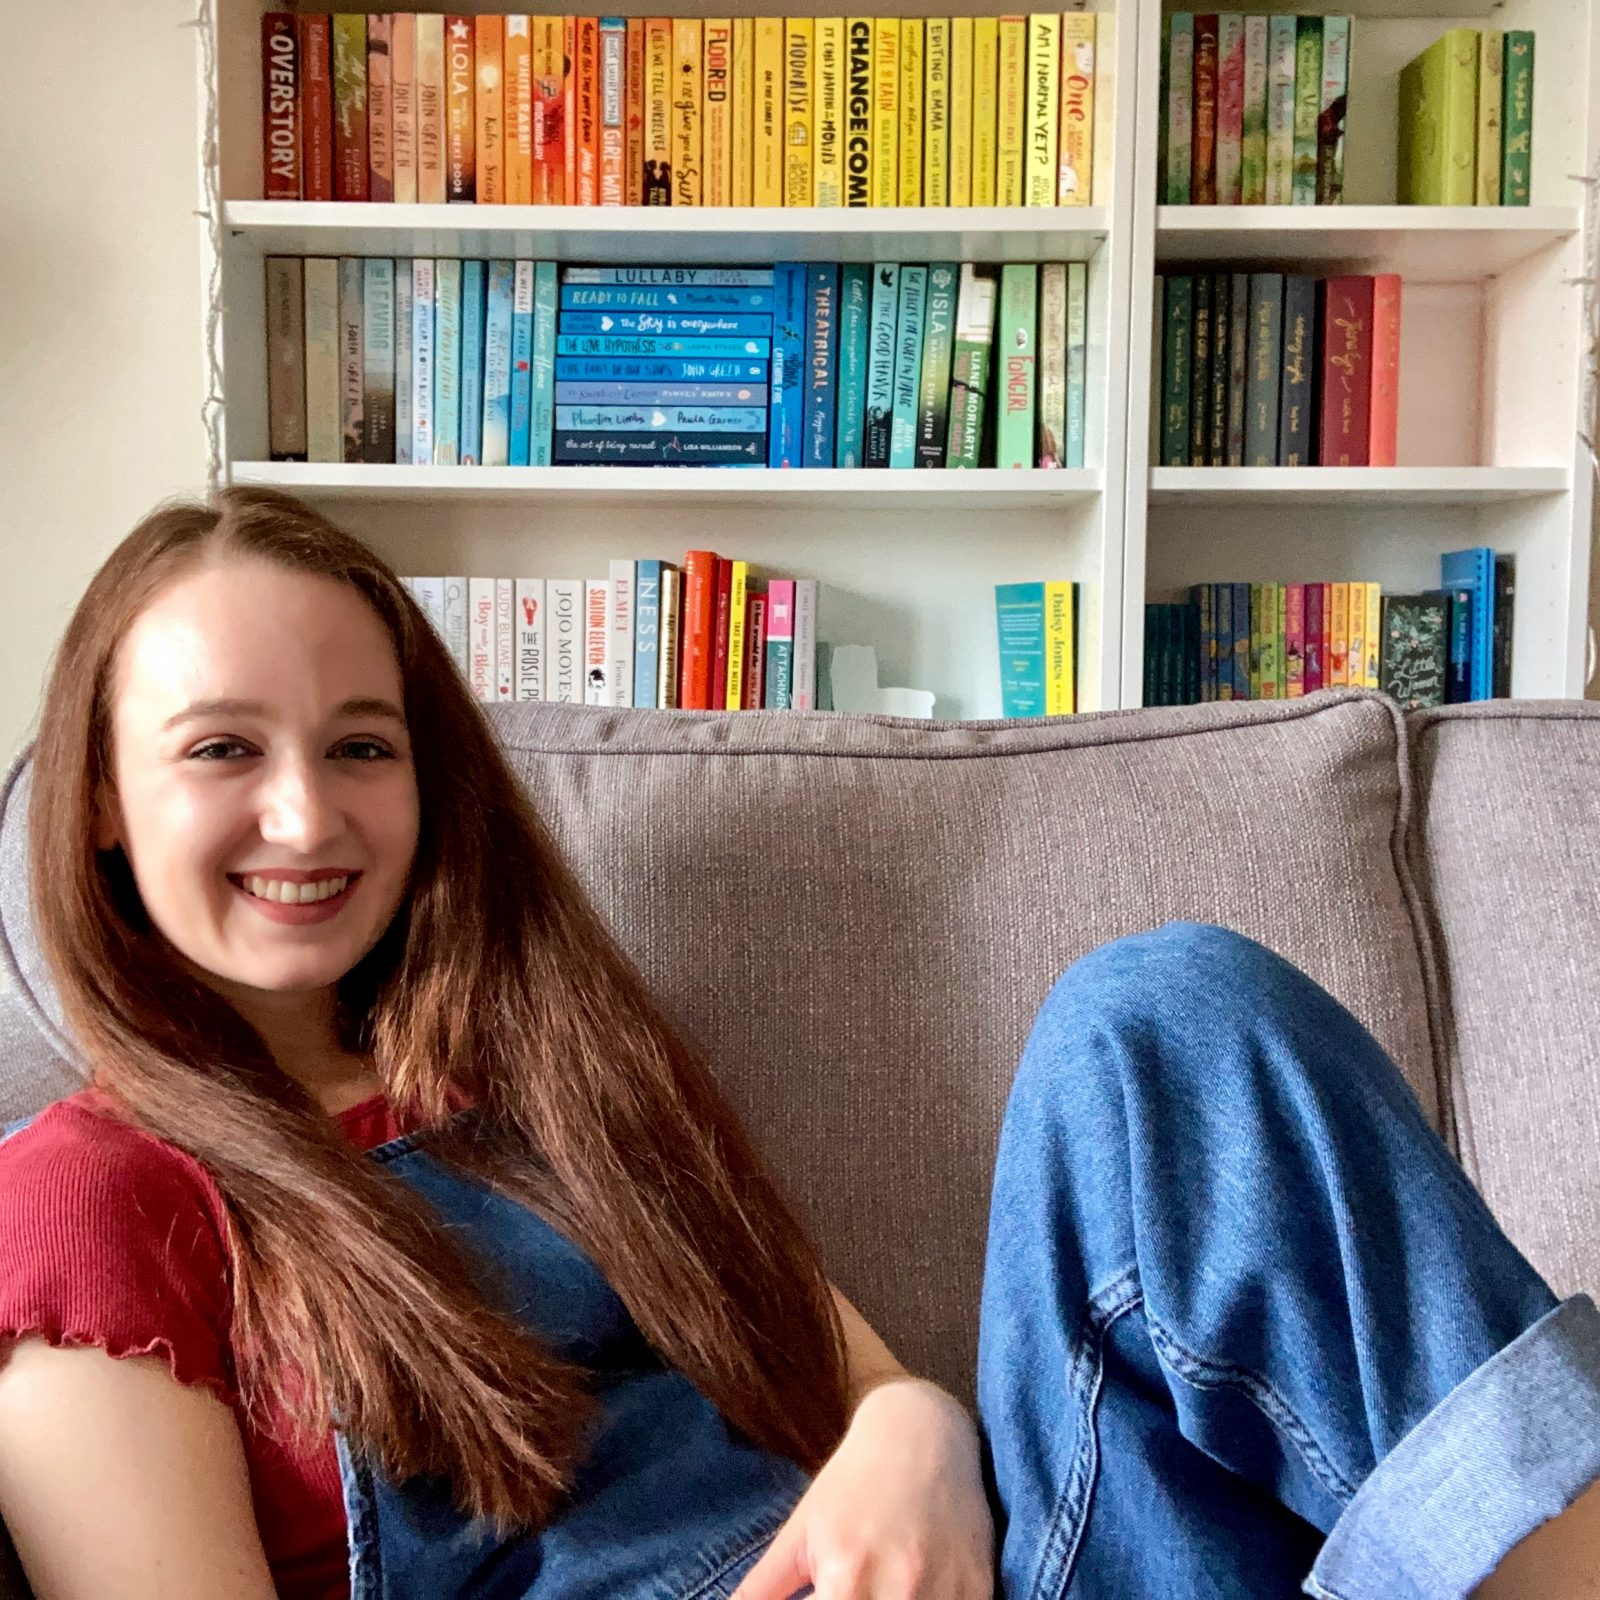 Pippa comfortably propped up on grey sofa, one leg bent up. Hair down, wearing red t-shirt and blue demin dungarees. Shelves of rainbow bookshelf (mostly blue and yellow) visible in background.